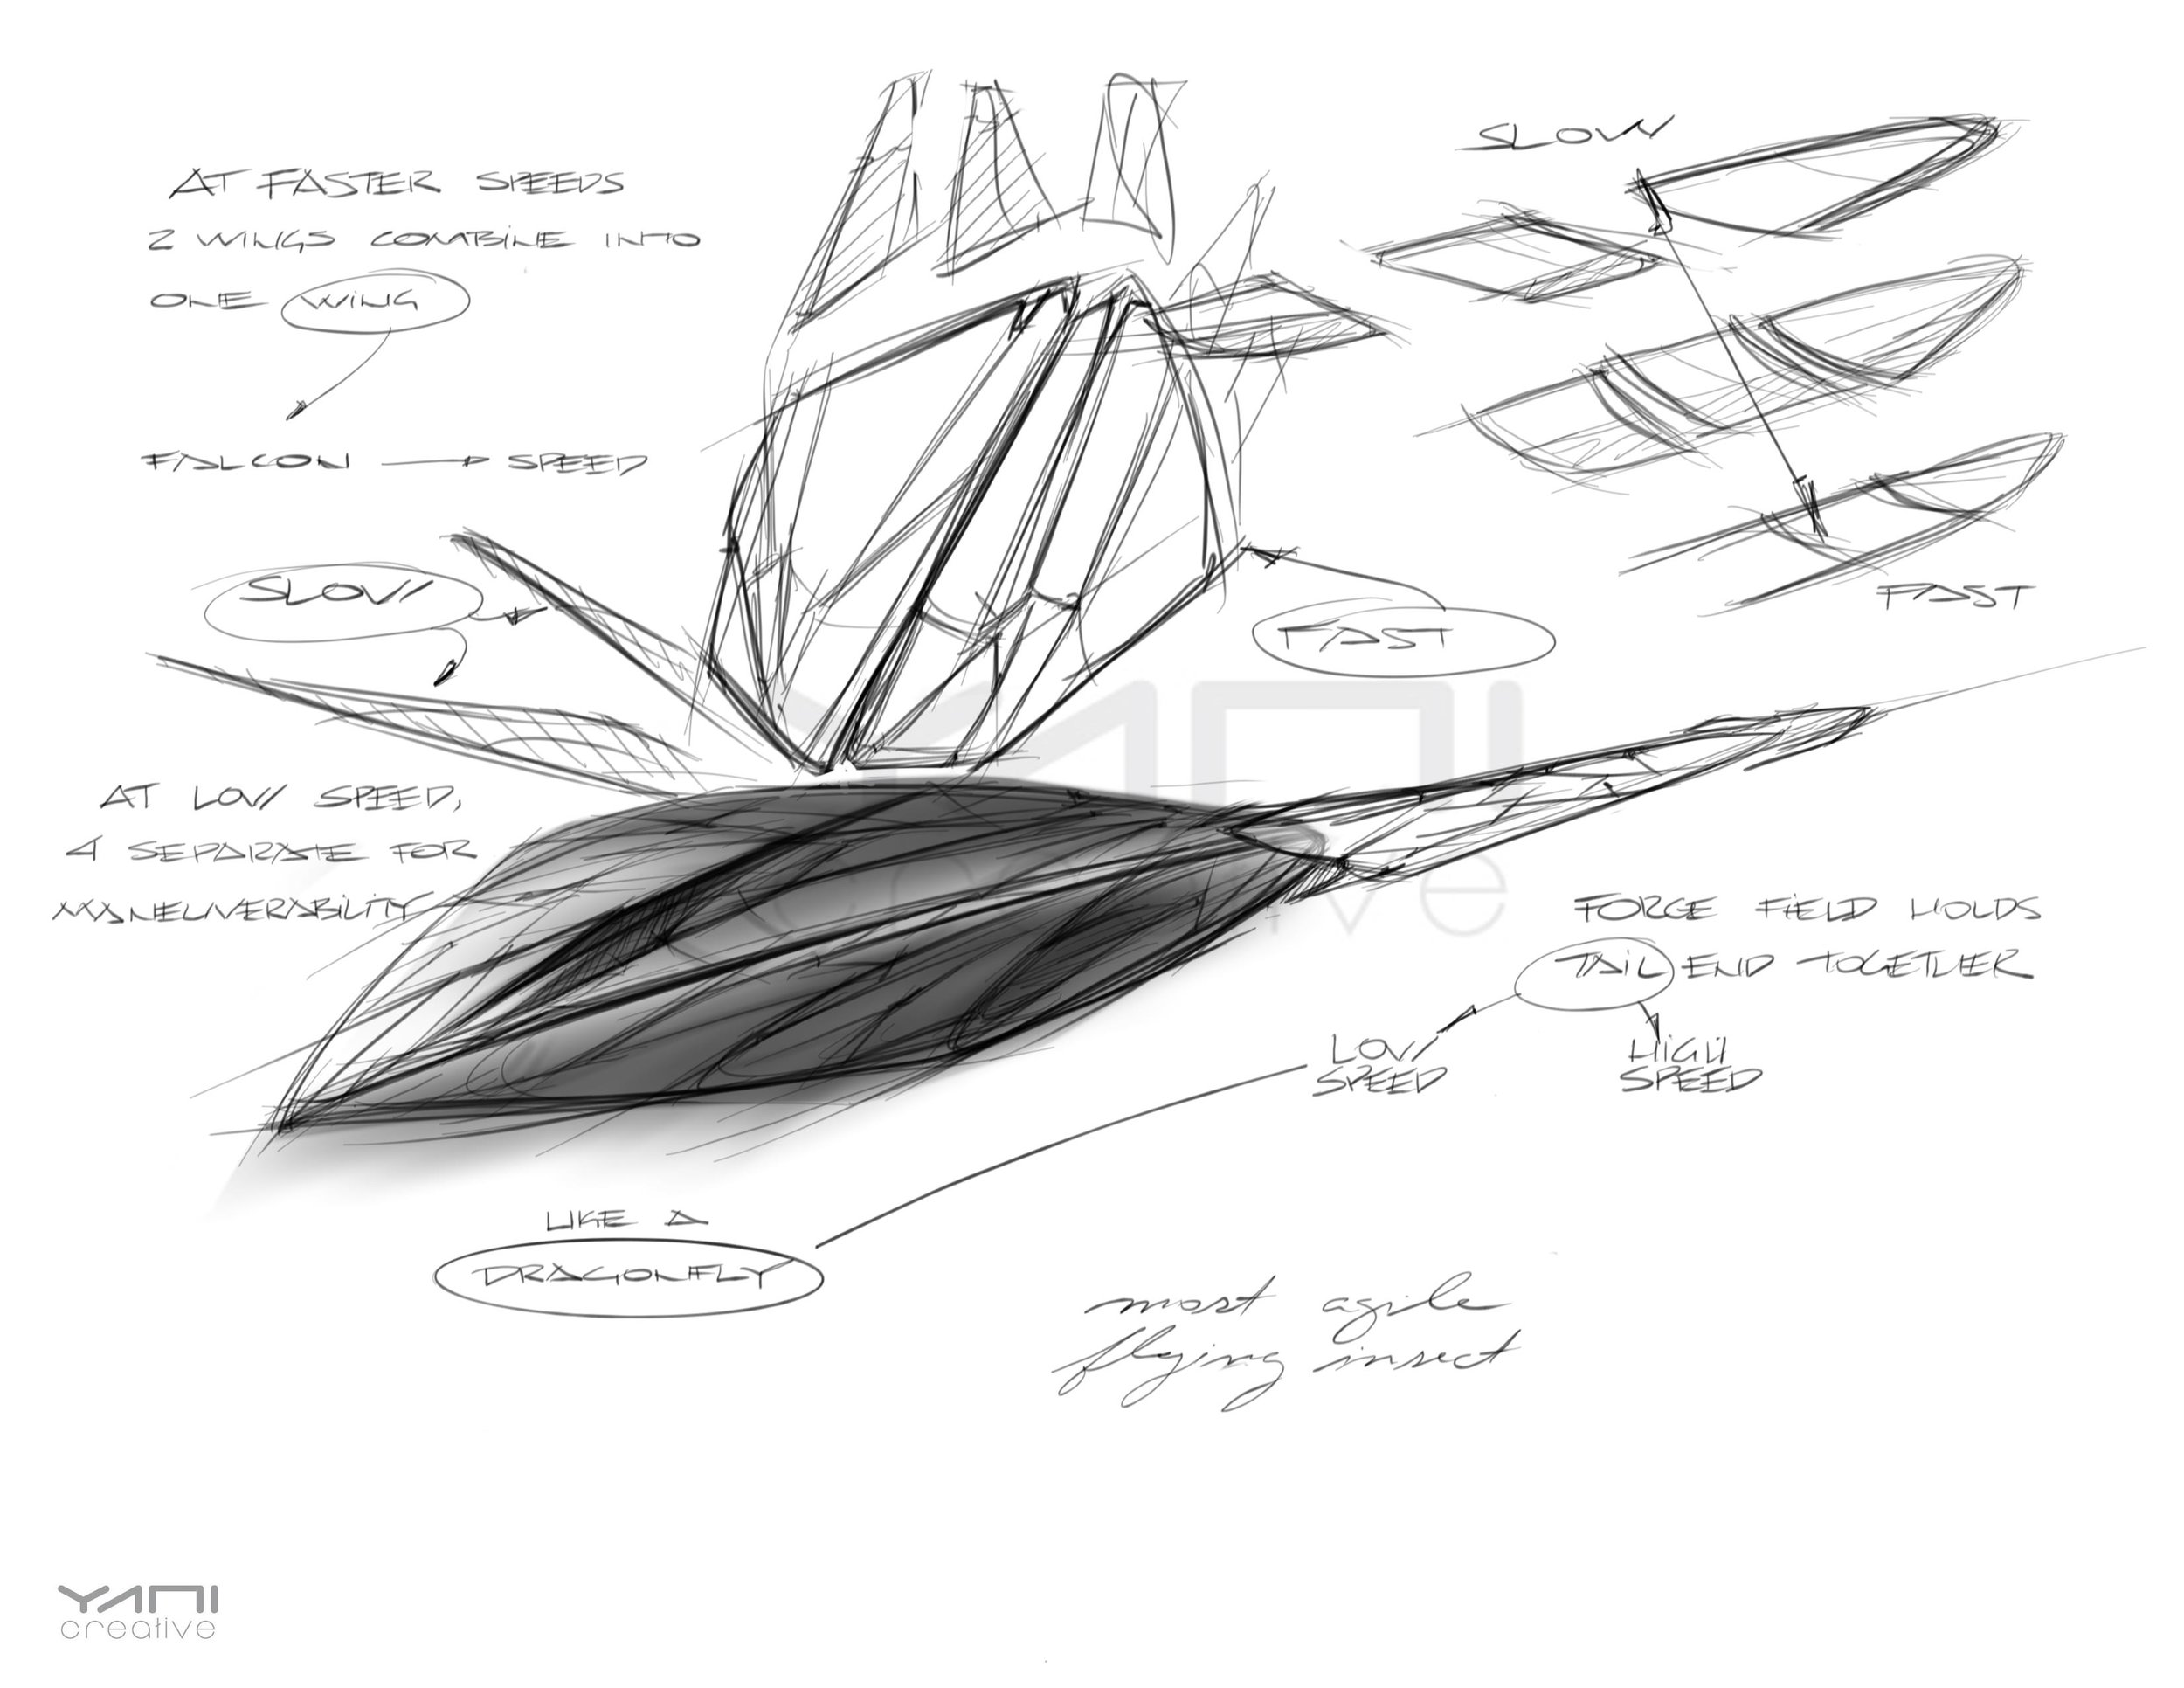 Dune_OrnithopterConcepts10.jpg